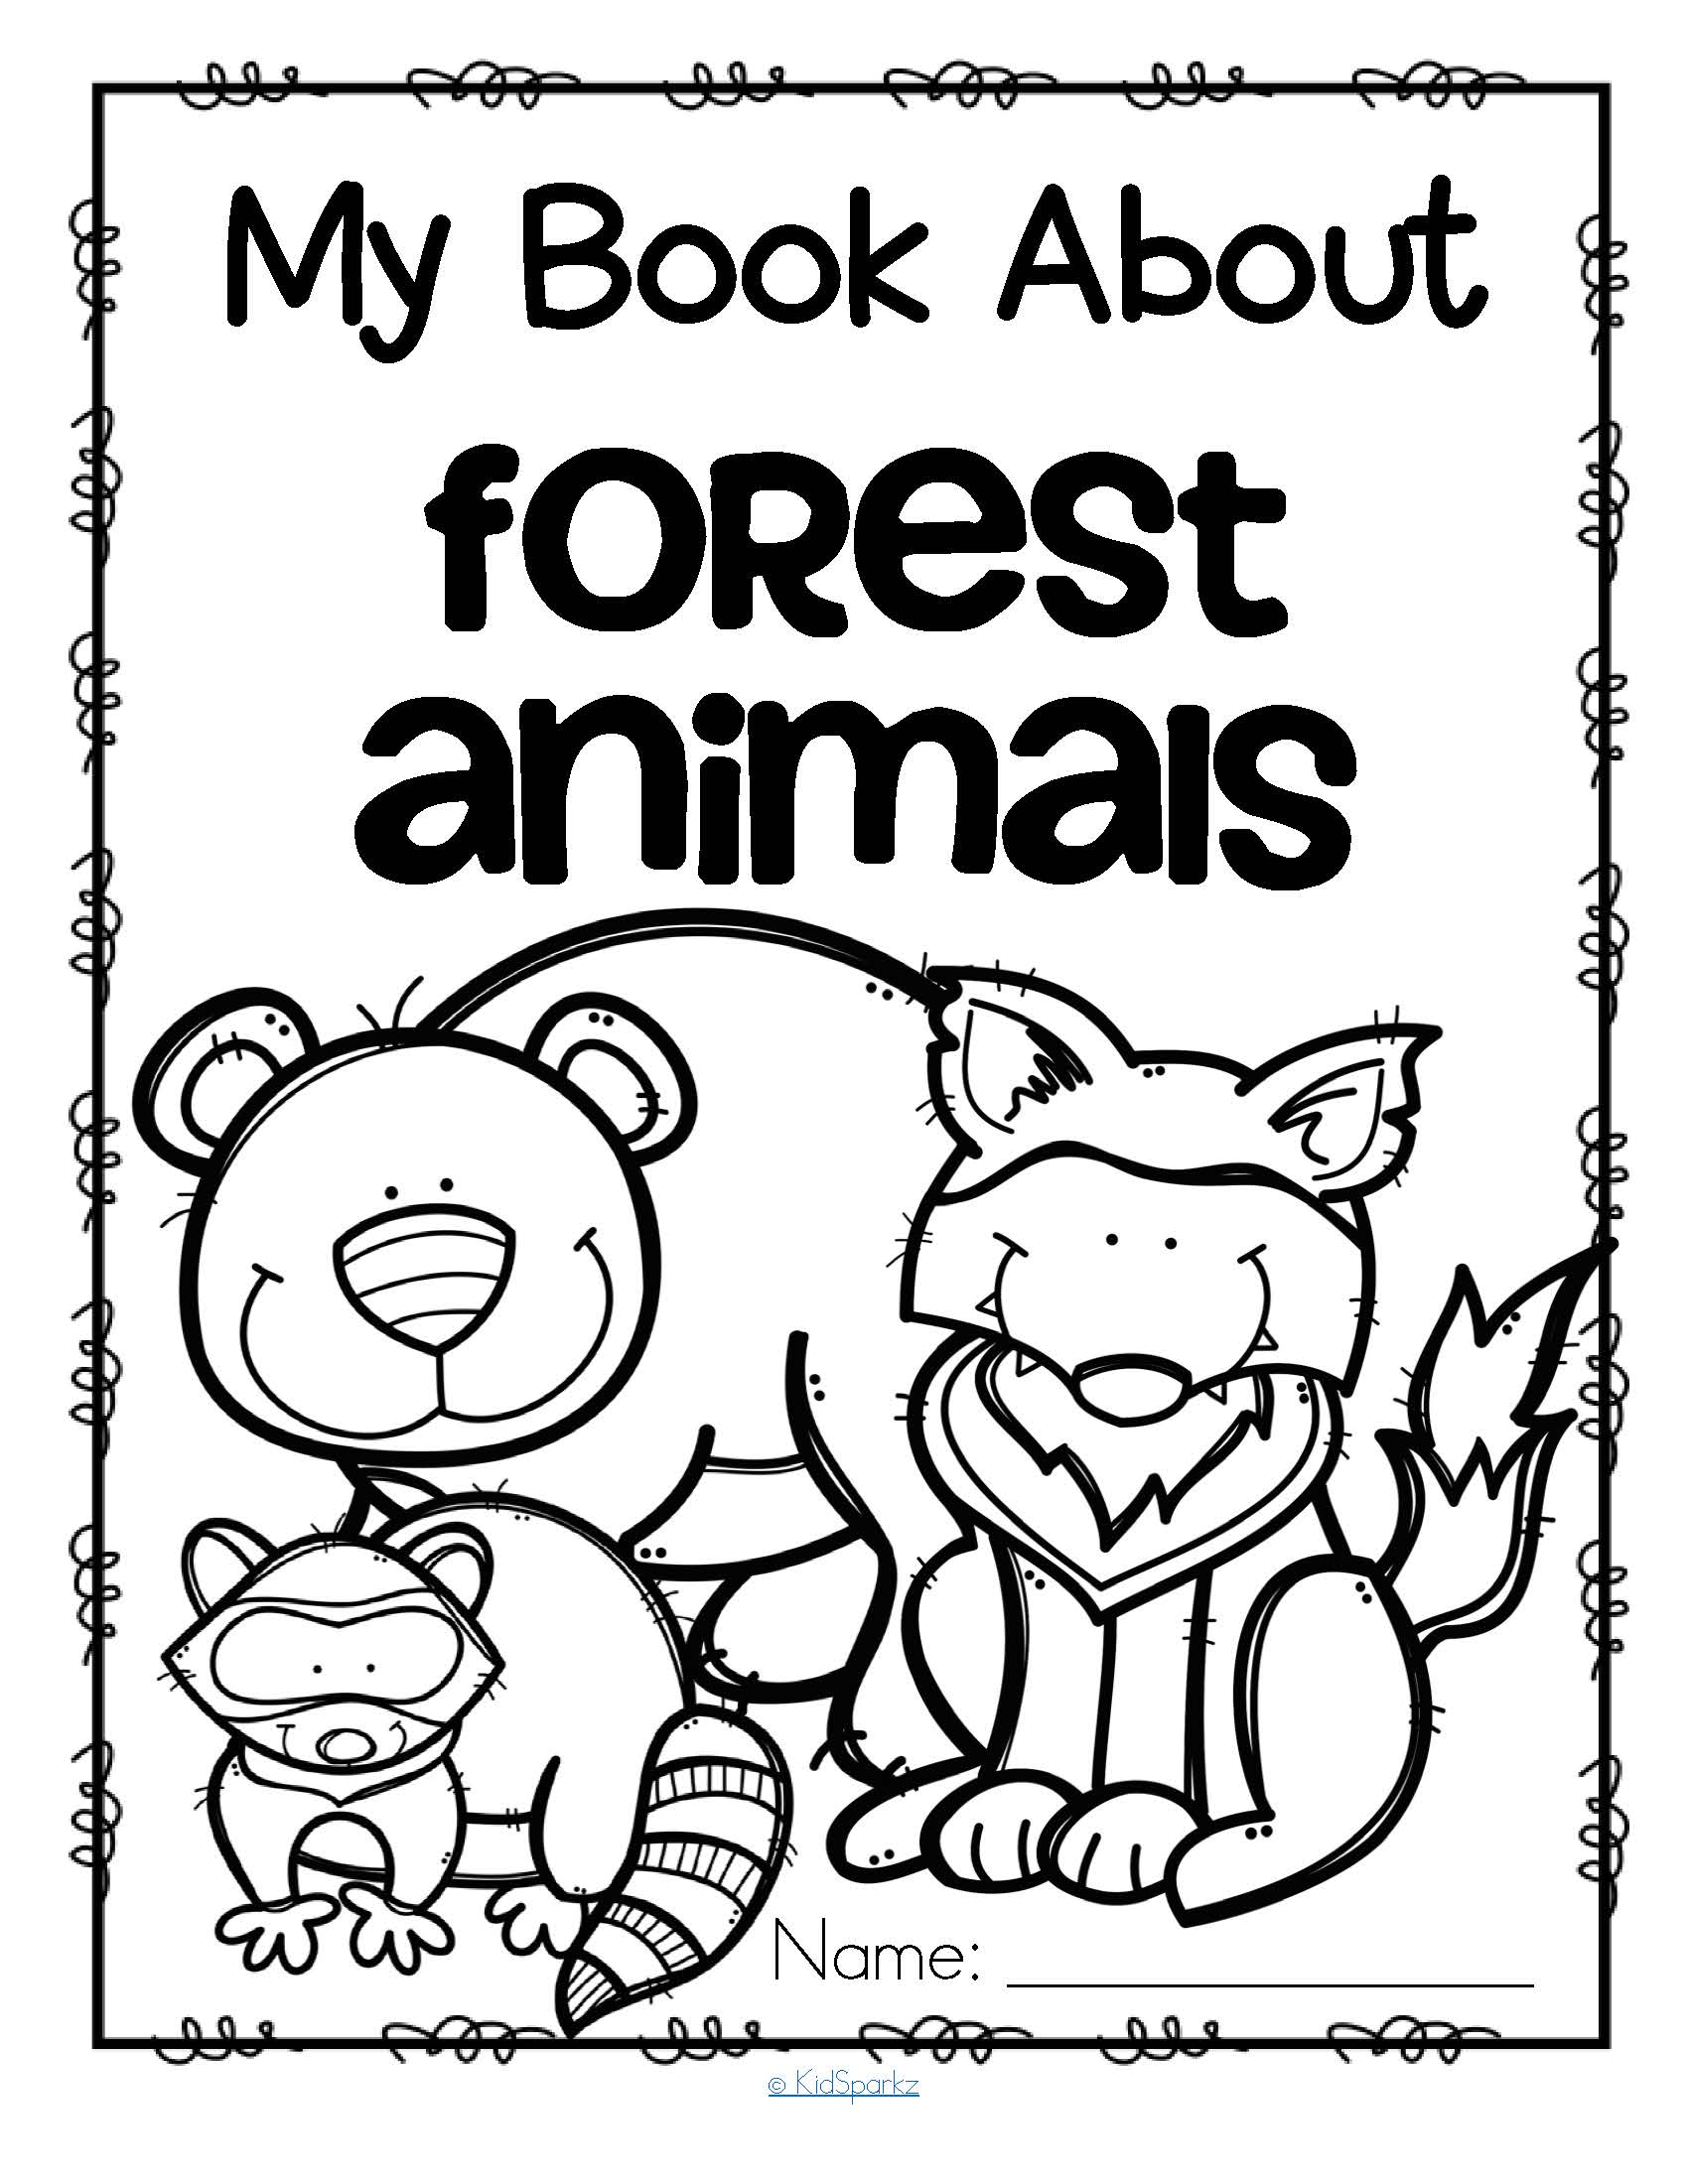 My Book About Forest Animals